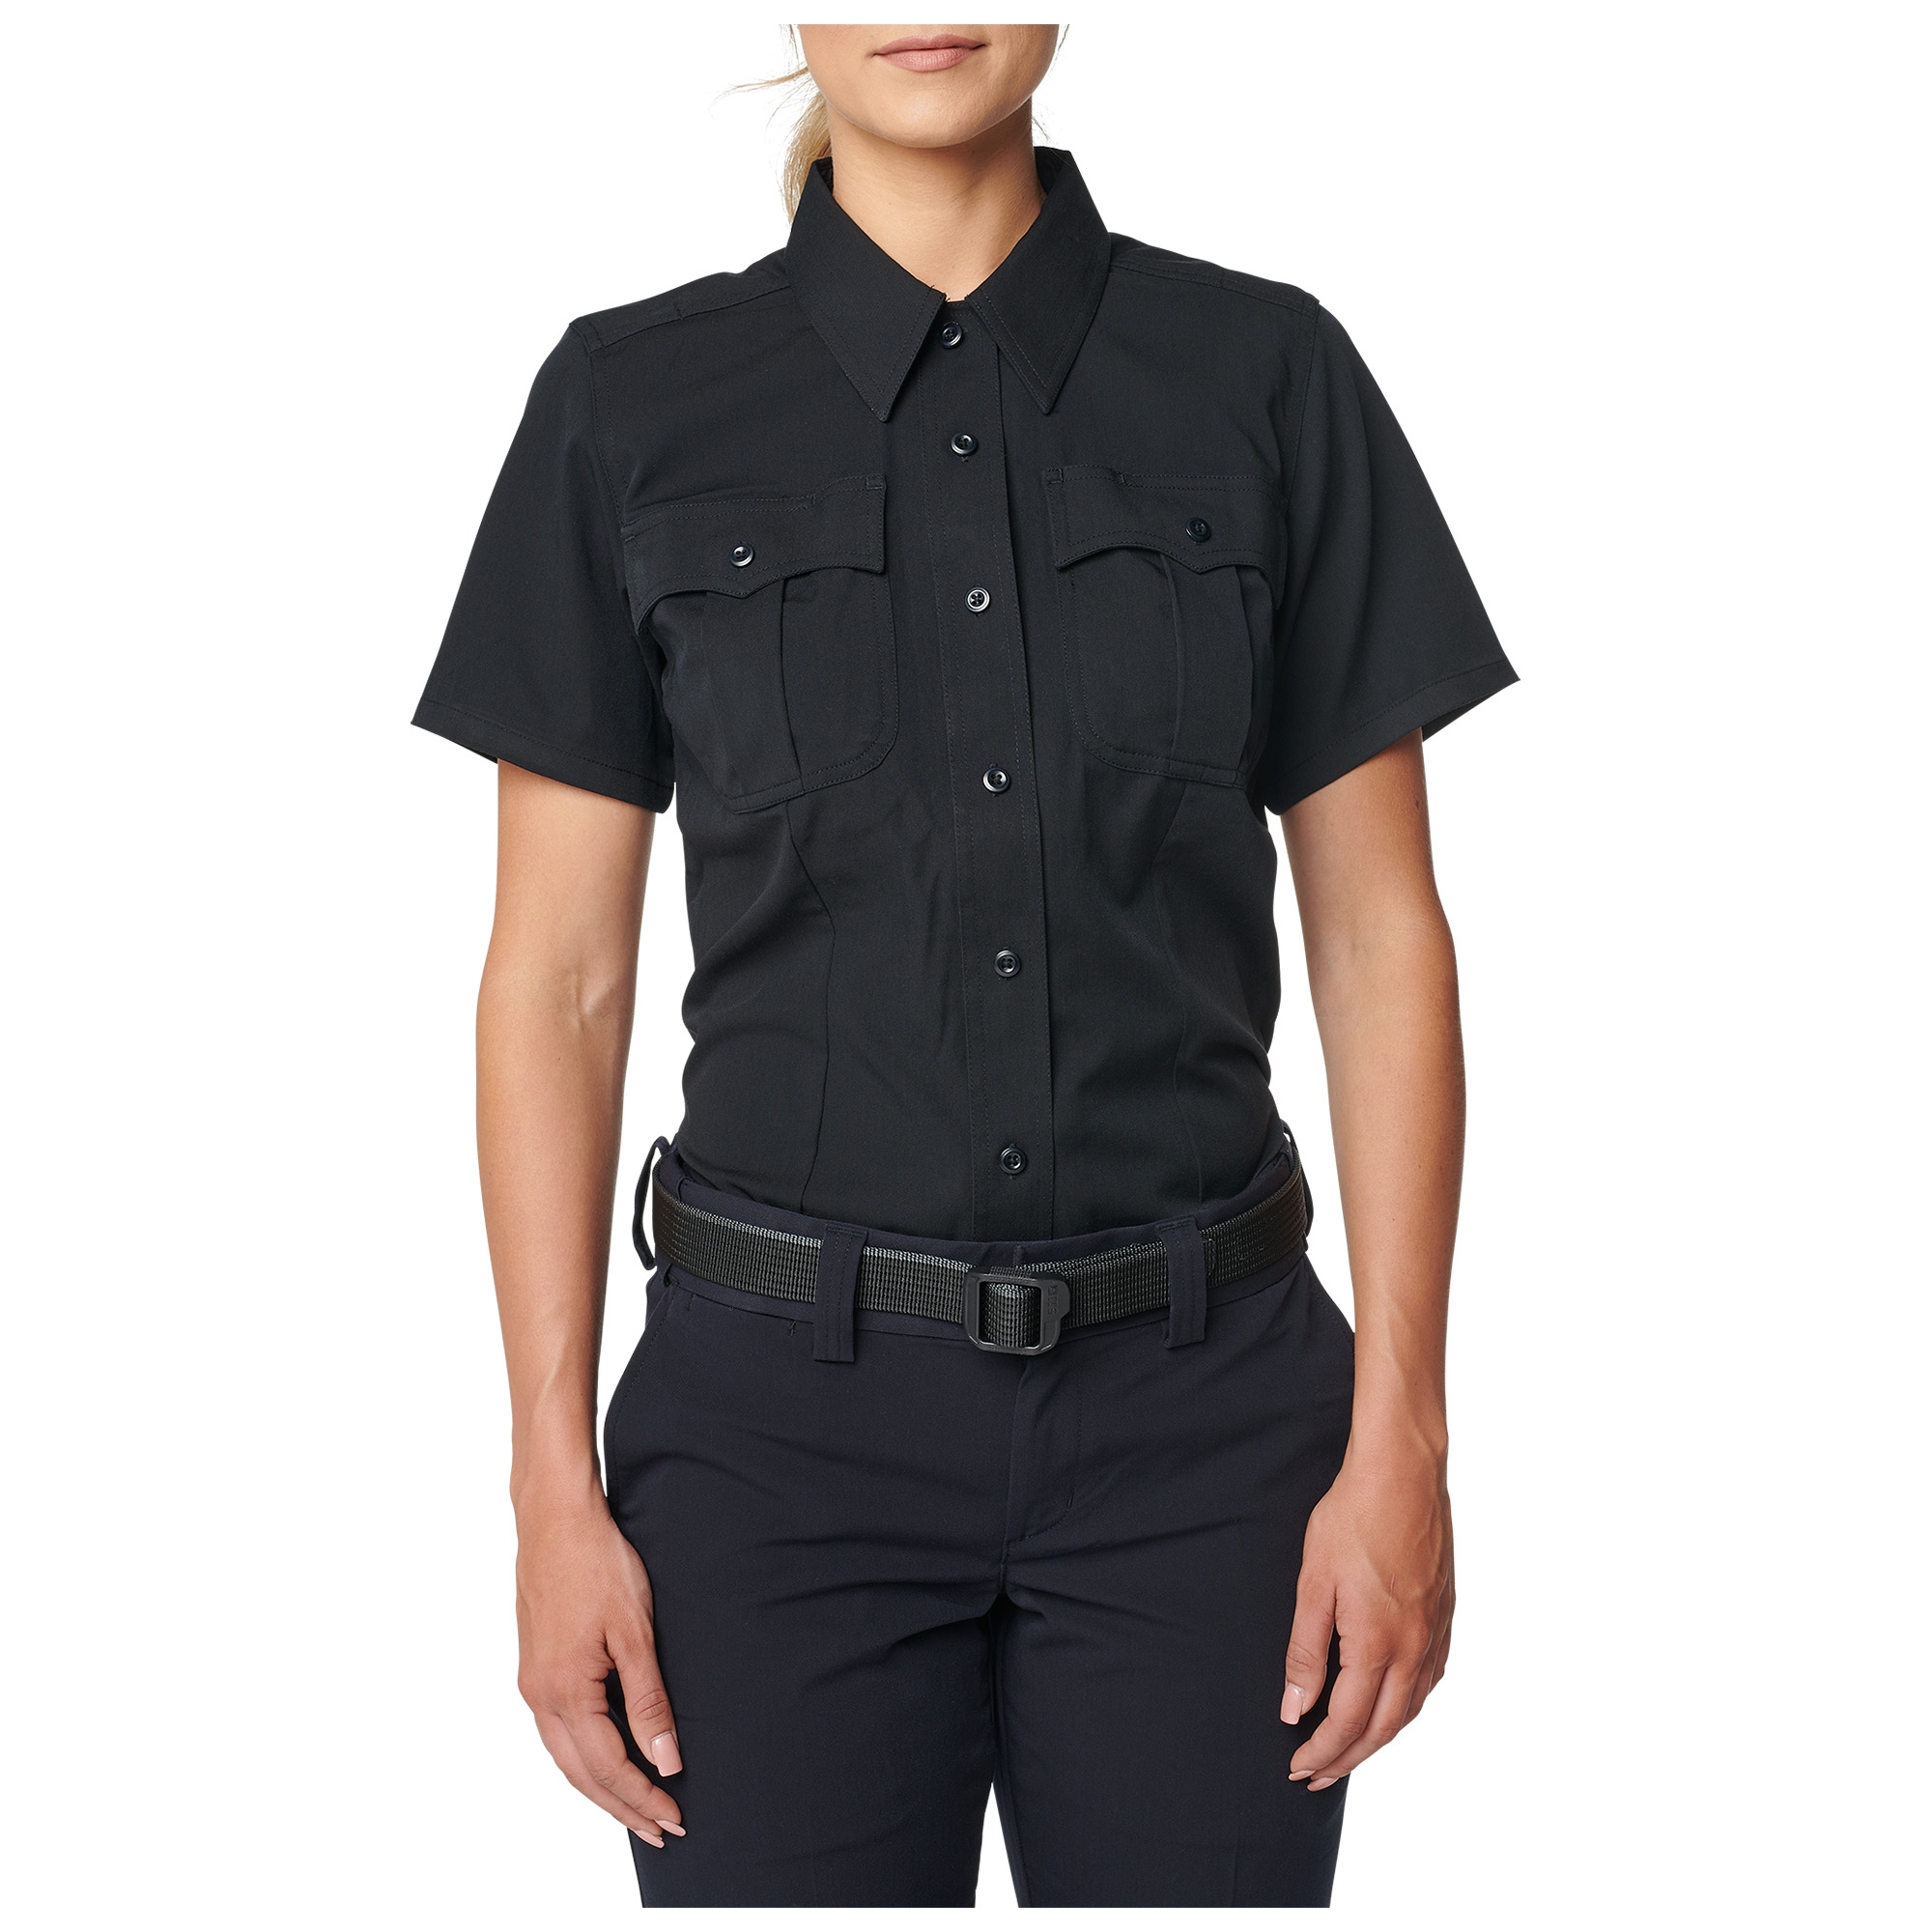 5.11 Tactical Women's Womens Class A Flex Tac Poly/Wool Twill Short Sleeve Shirt